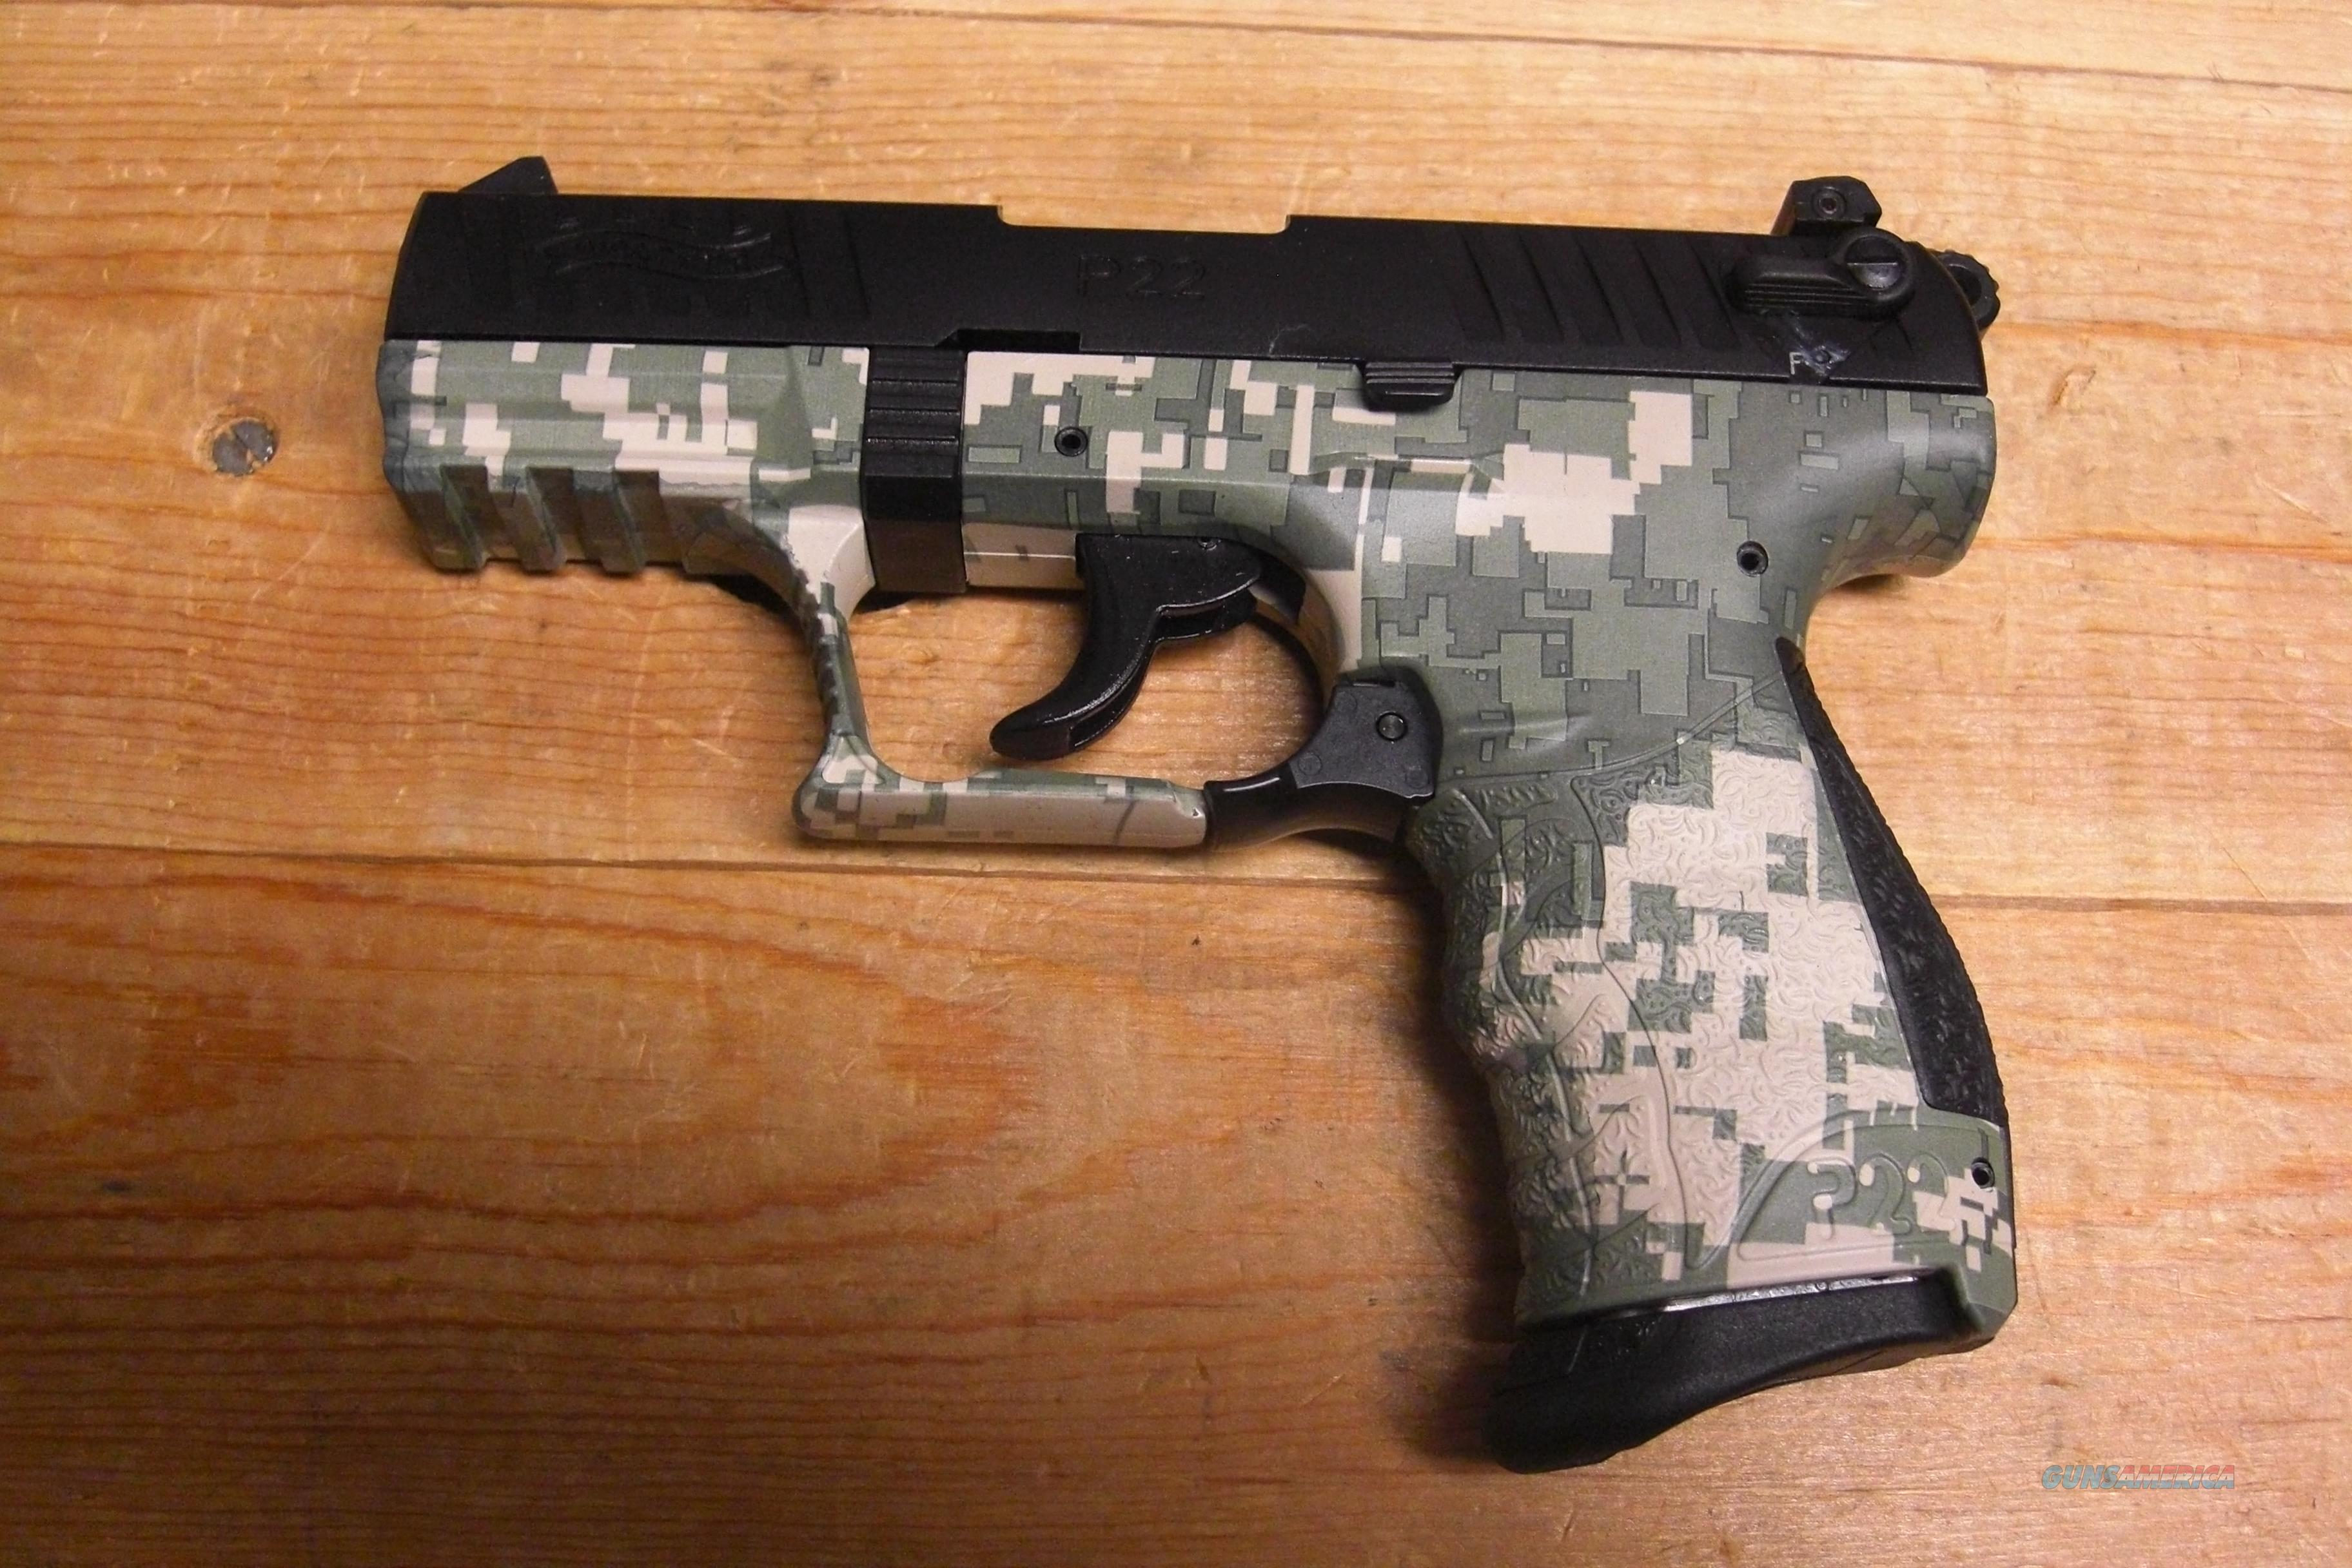 P22 w/black and digital camo finish  Guns > Pistols > Walther Pistols > Post WWII > P22